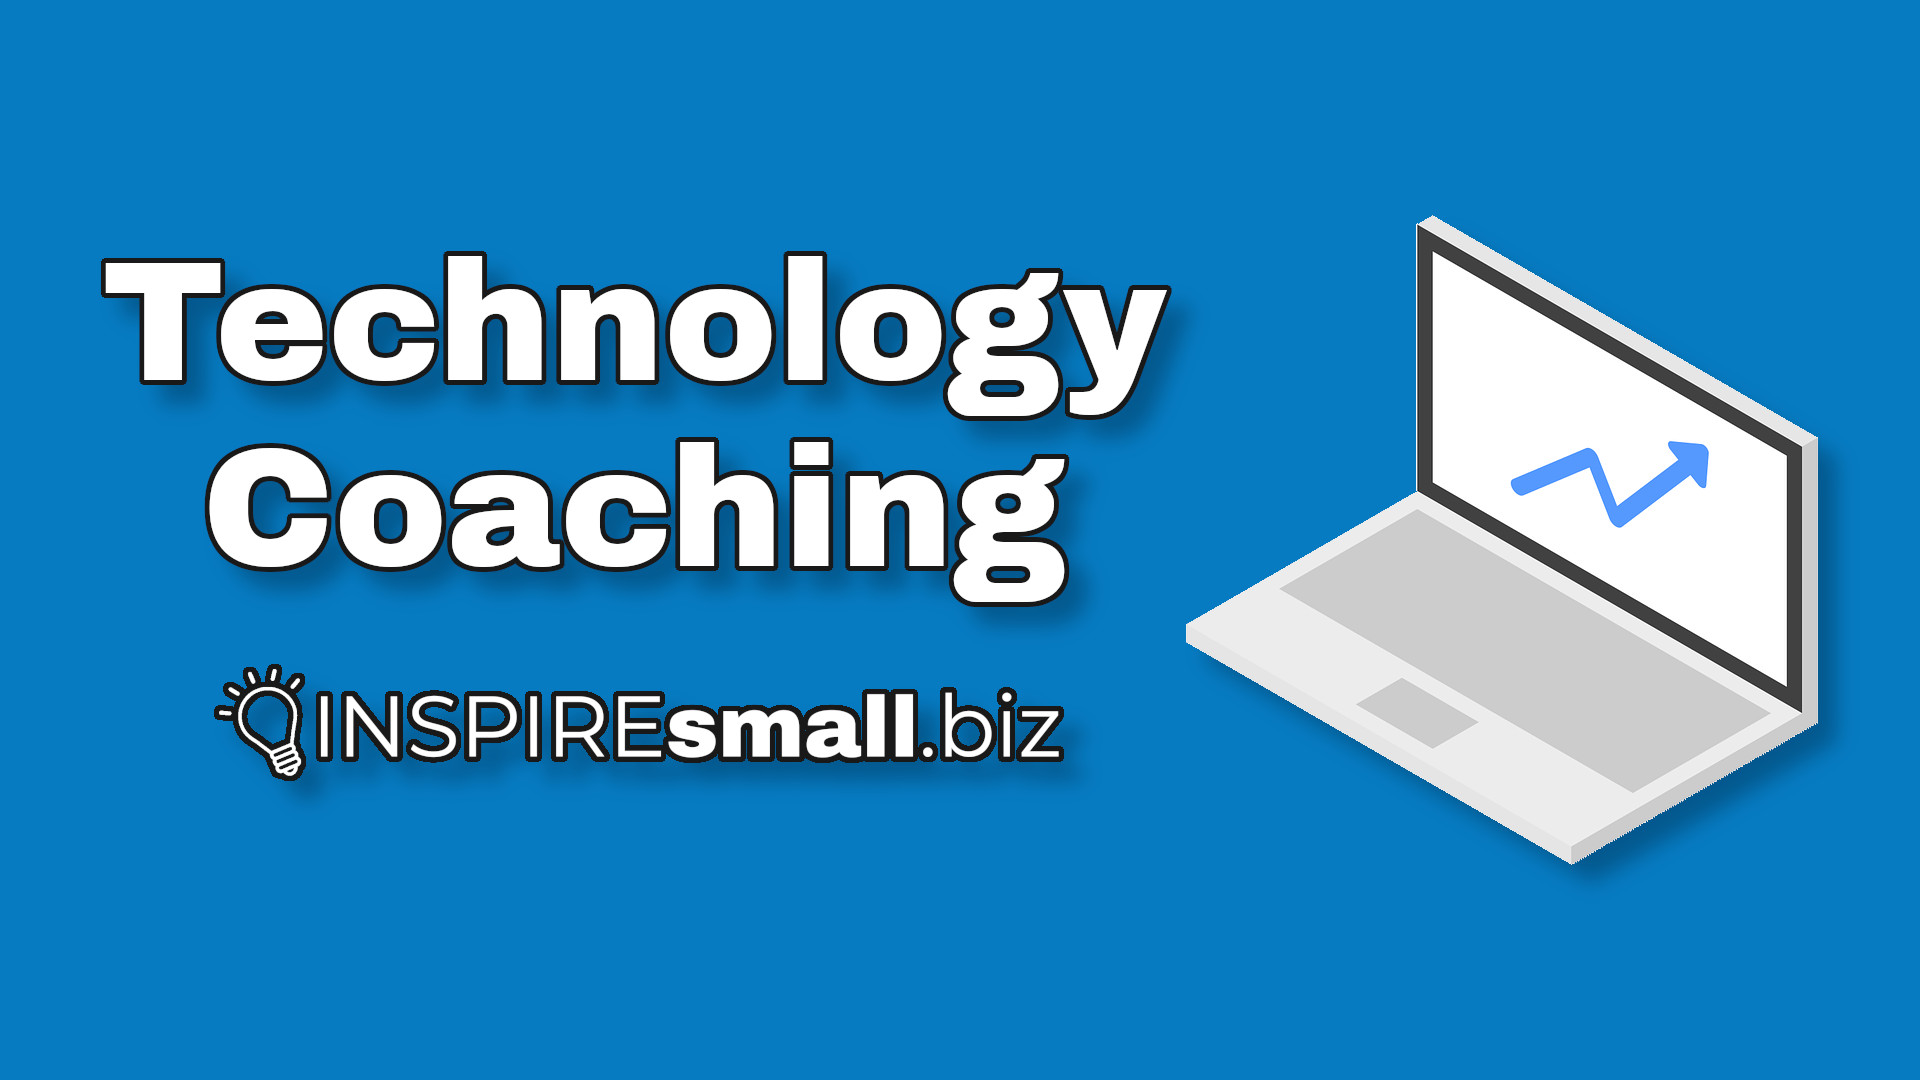 Technology Coaching from INSPIREsmall.biz over a blue background, with a silver laptop featuring an increasing arrow on its screen.